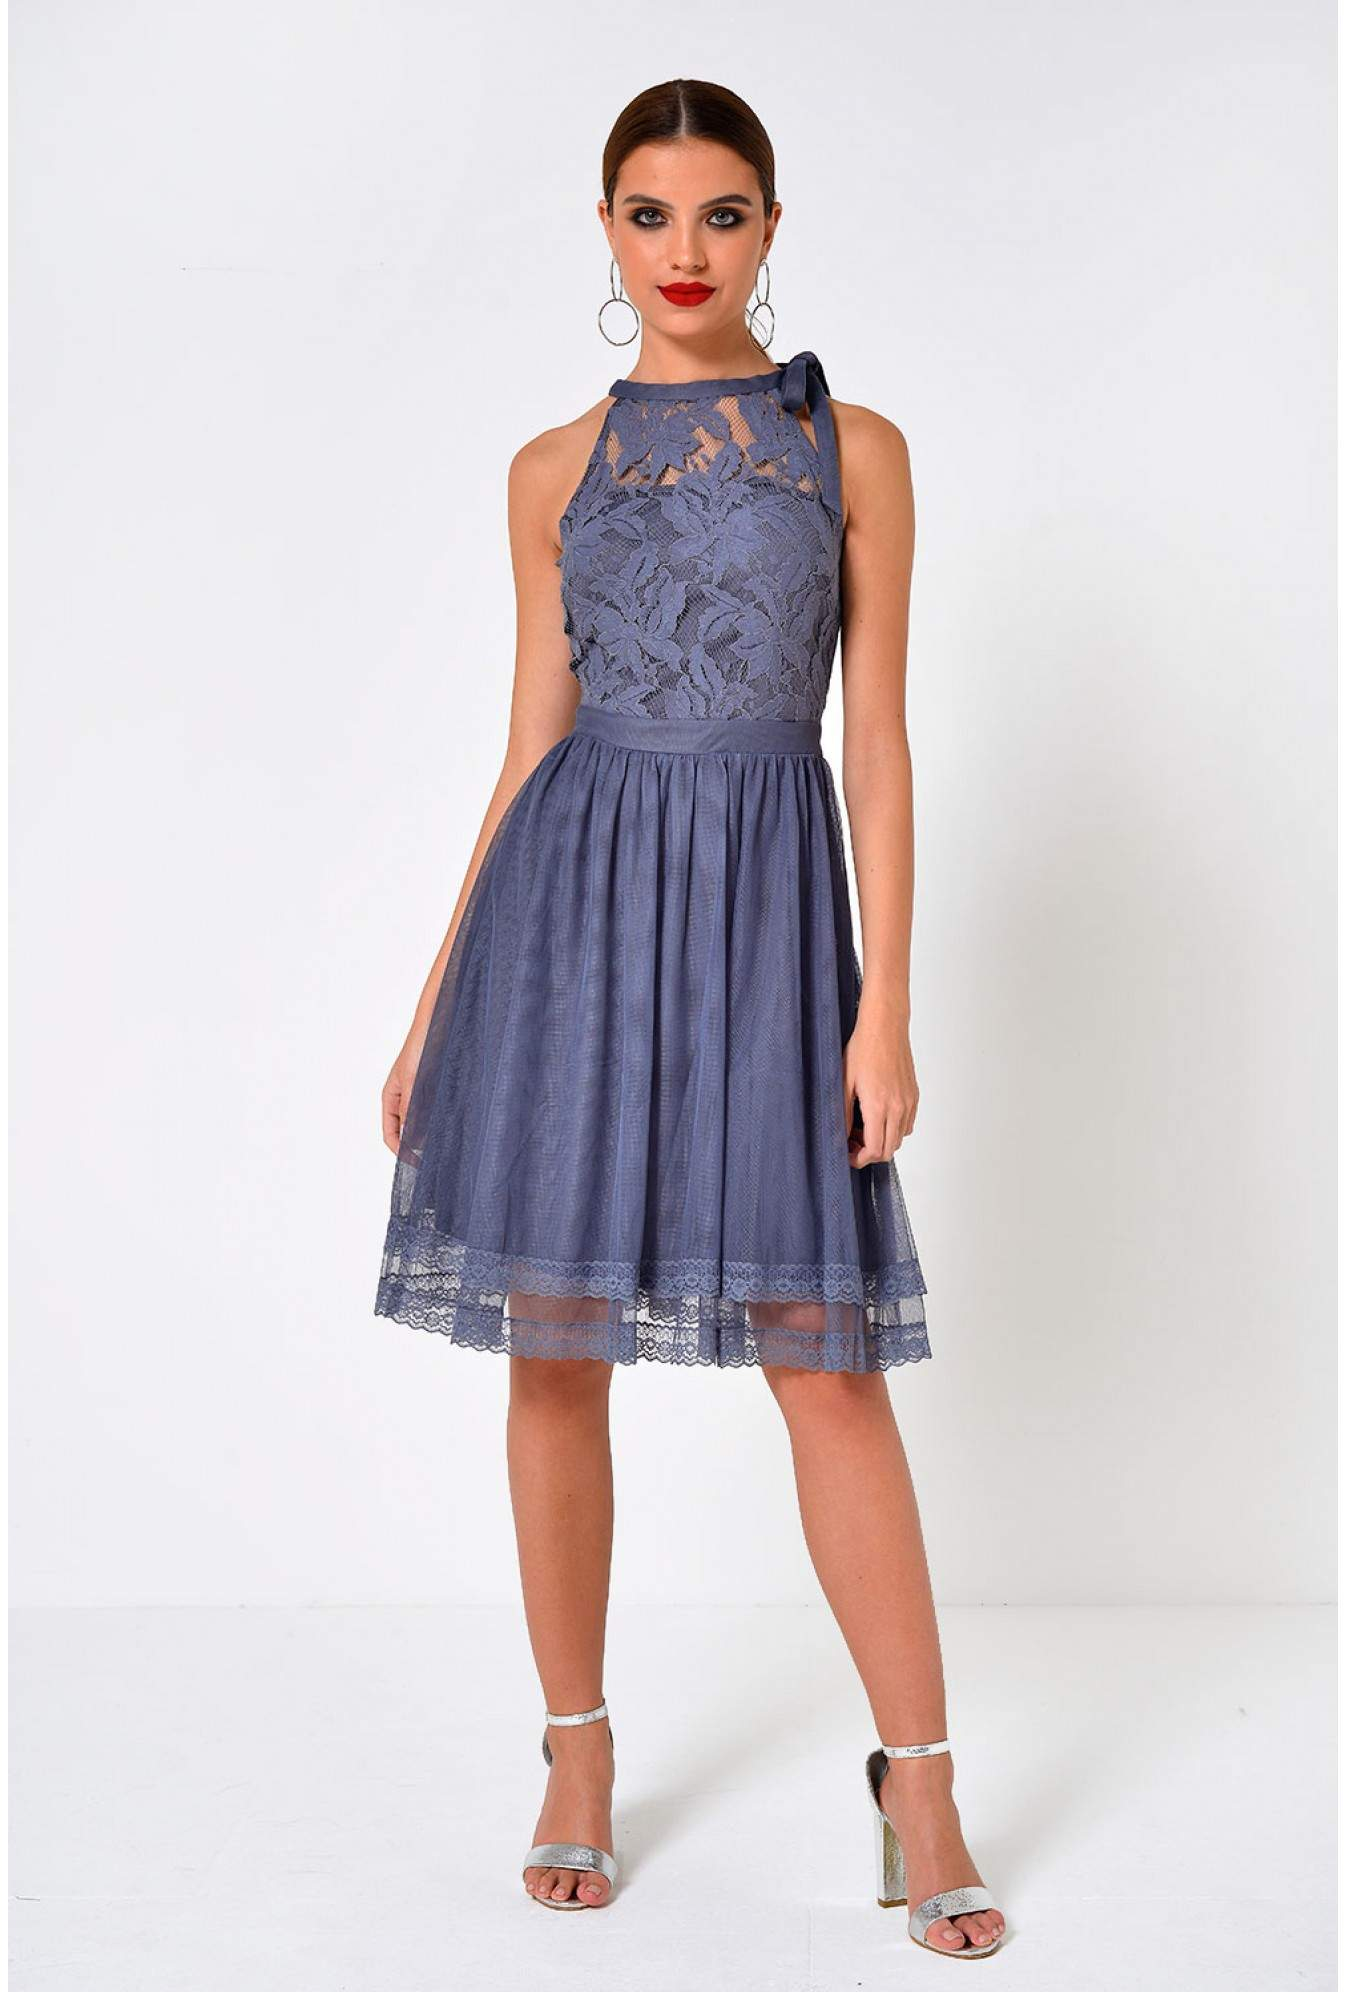 45329f5f416d More Views. Zinna Halterneck Short Dress with Crochet Lace in Grey